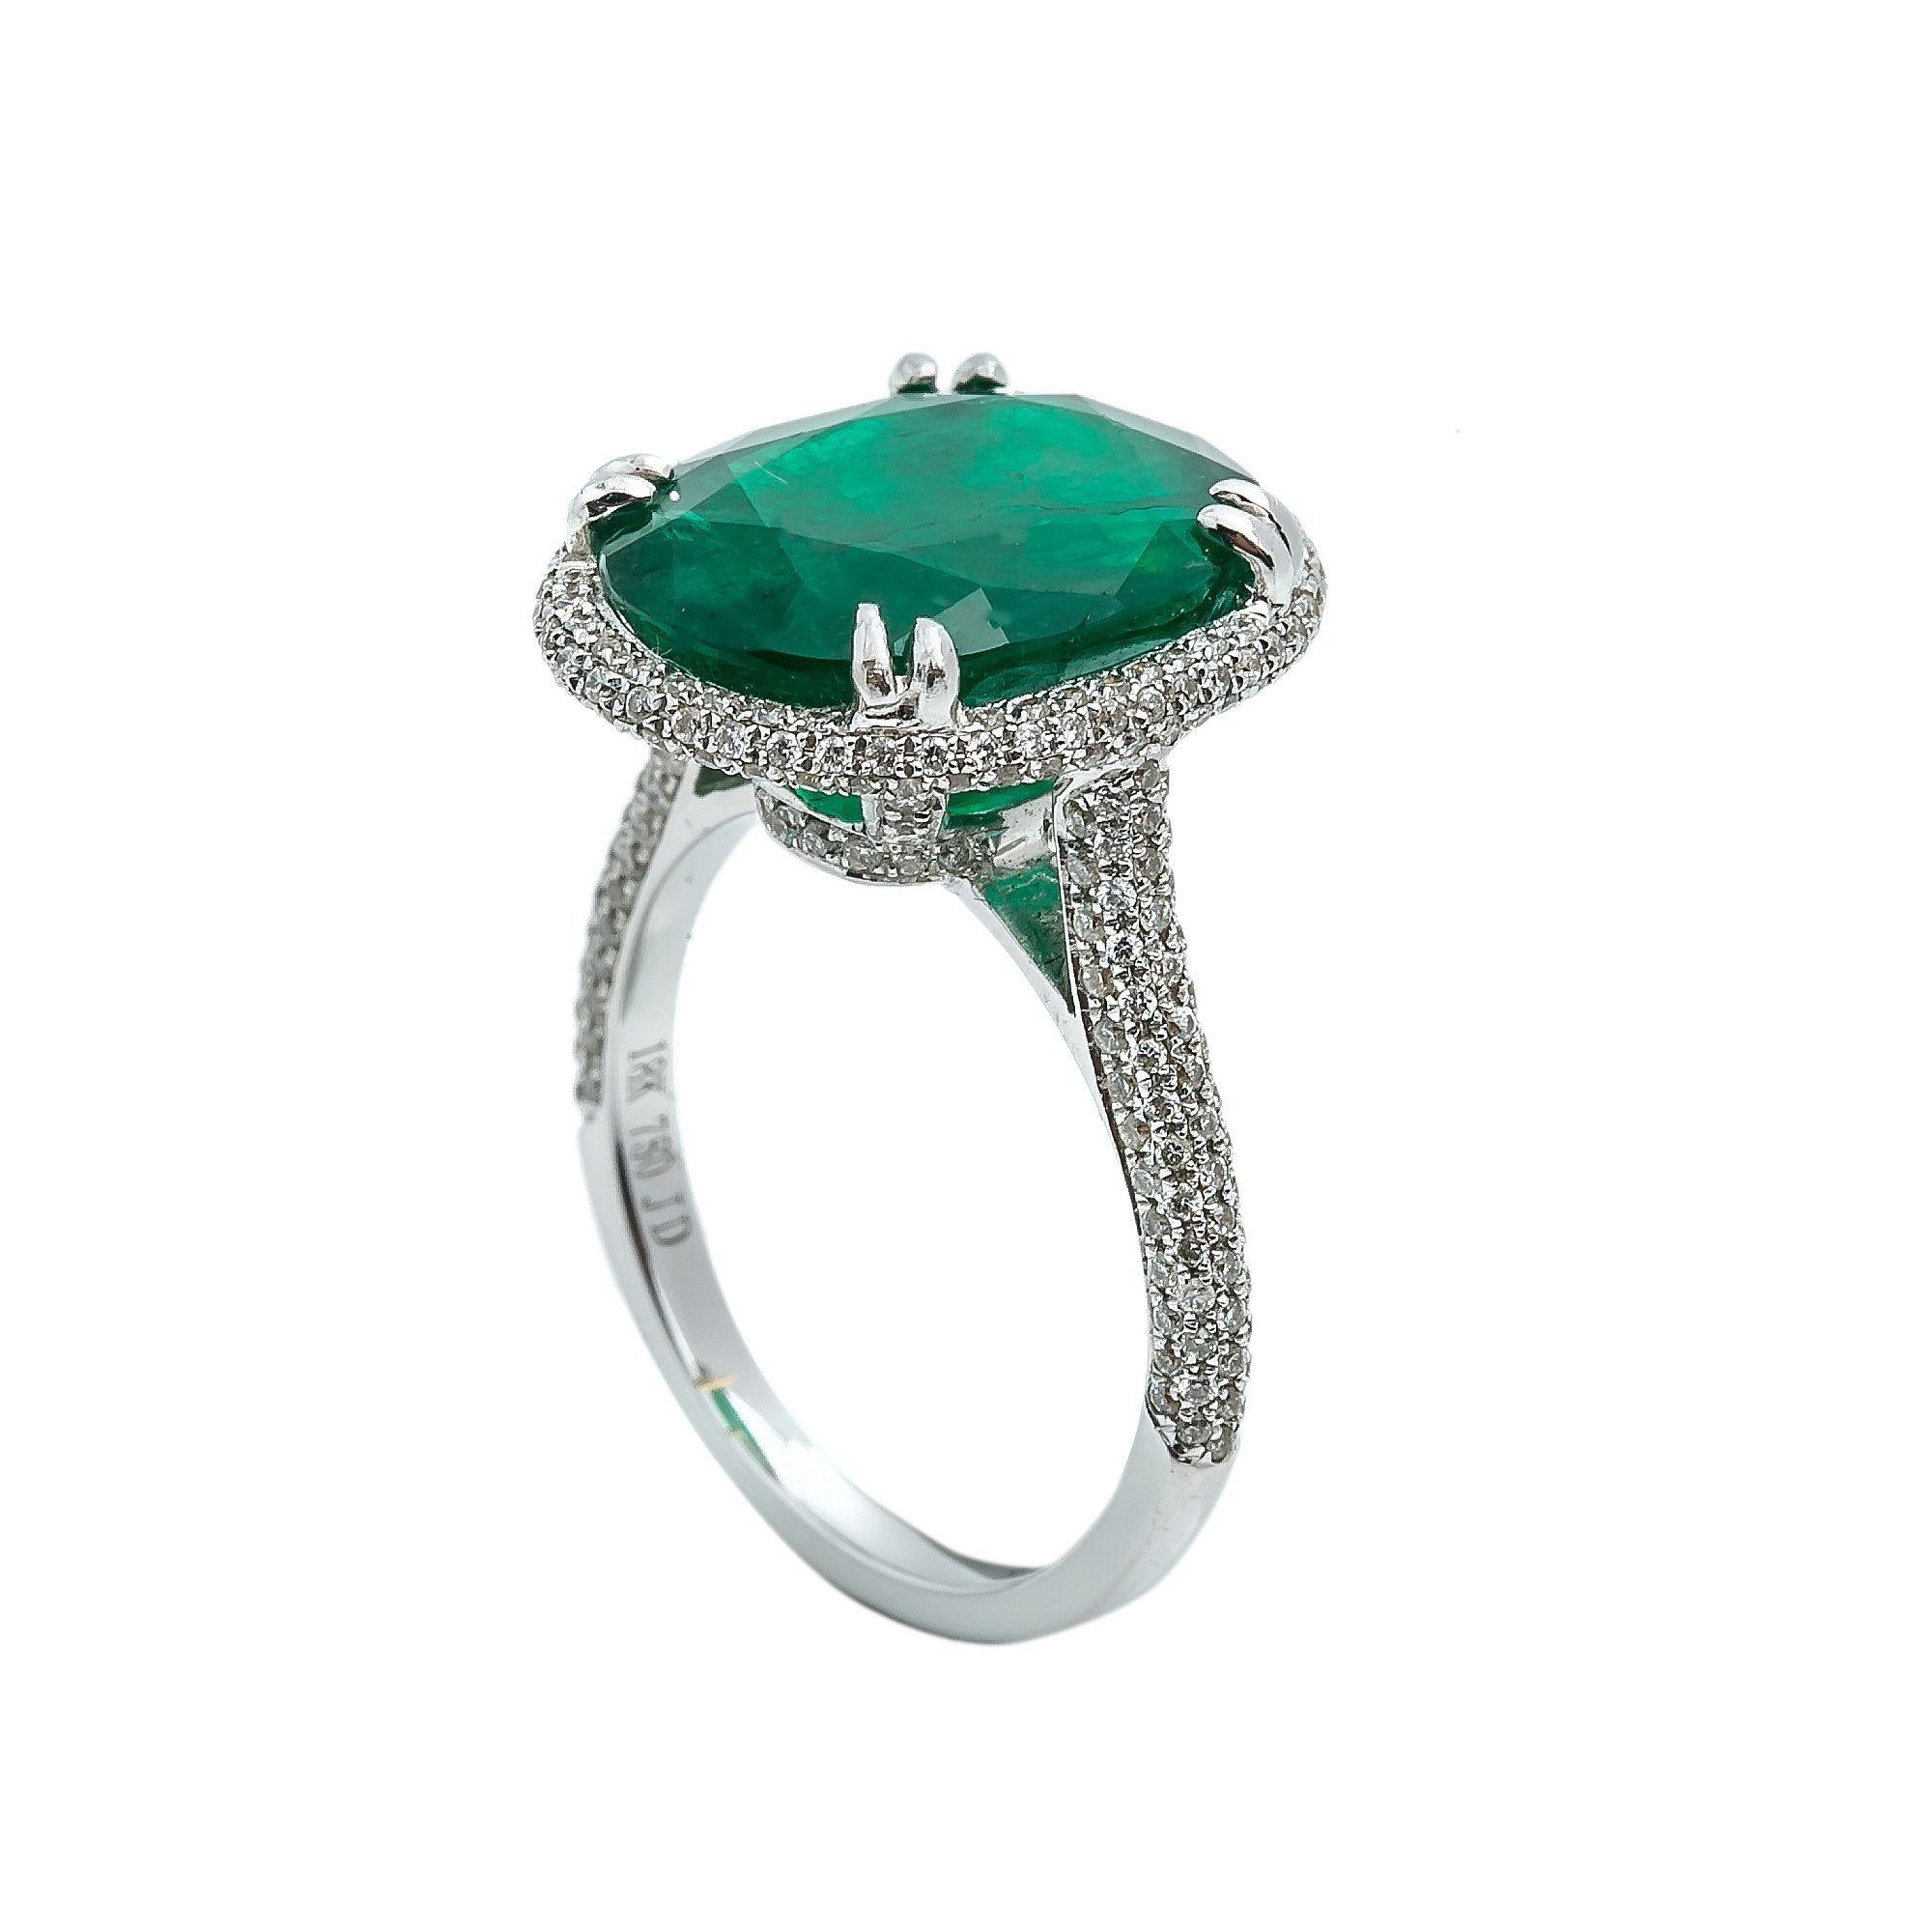 LADIES 18K WHITE GOLD HAND RING WITH 0.90CT DIAMONDS AND 8.55 CT EMERALD